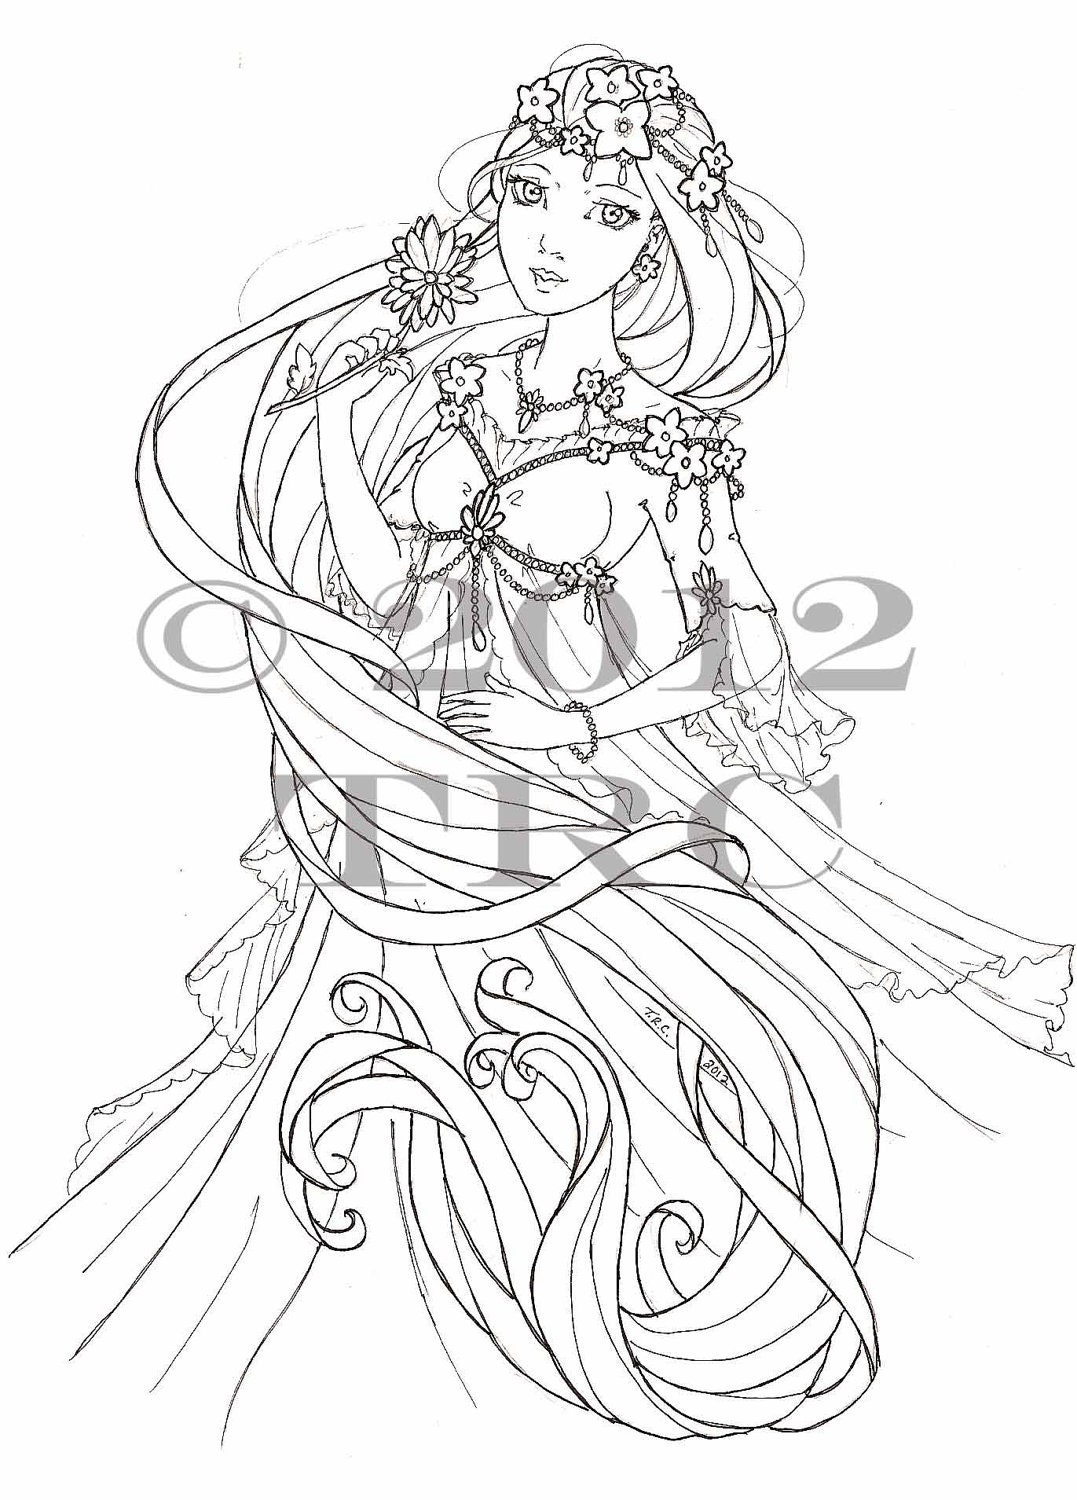 Anime Princess Coloring Pages Printable Sketch Coloring Page